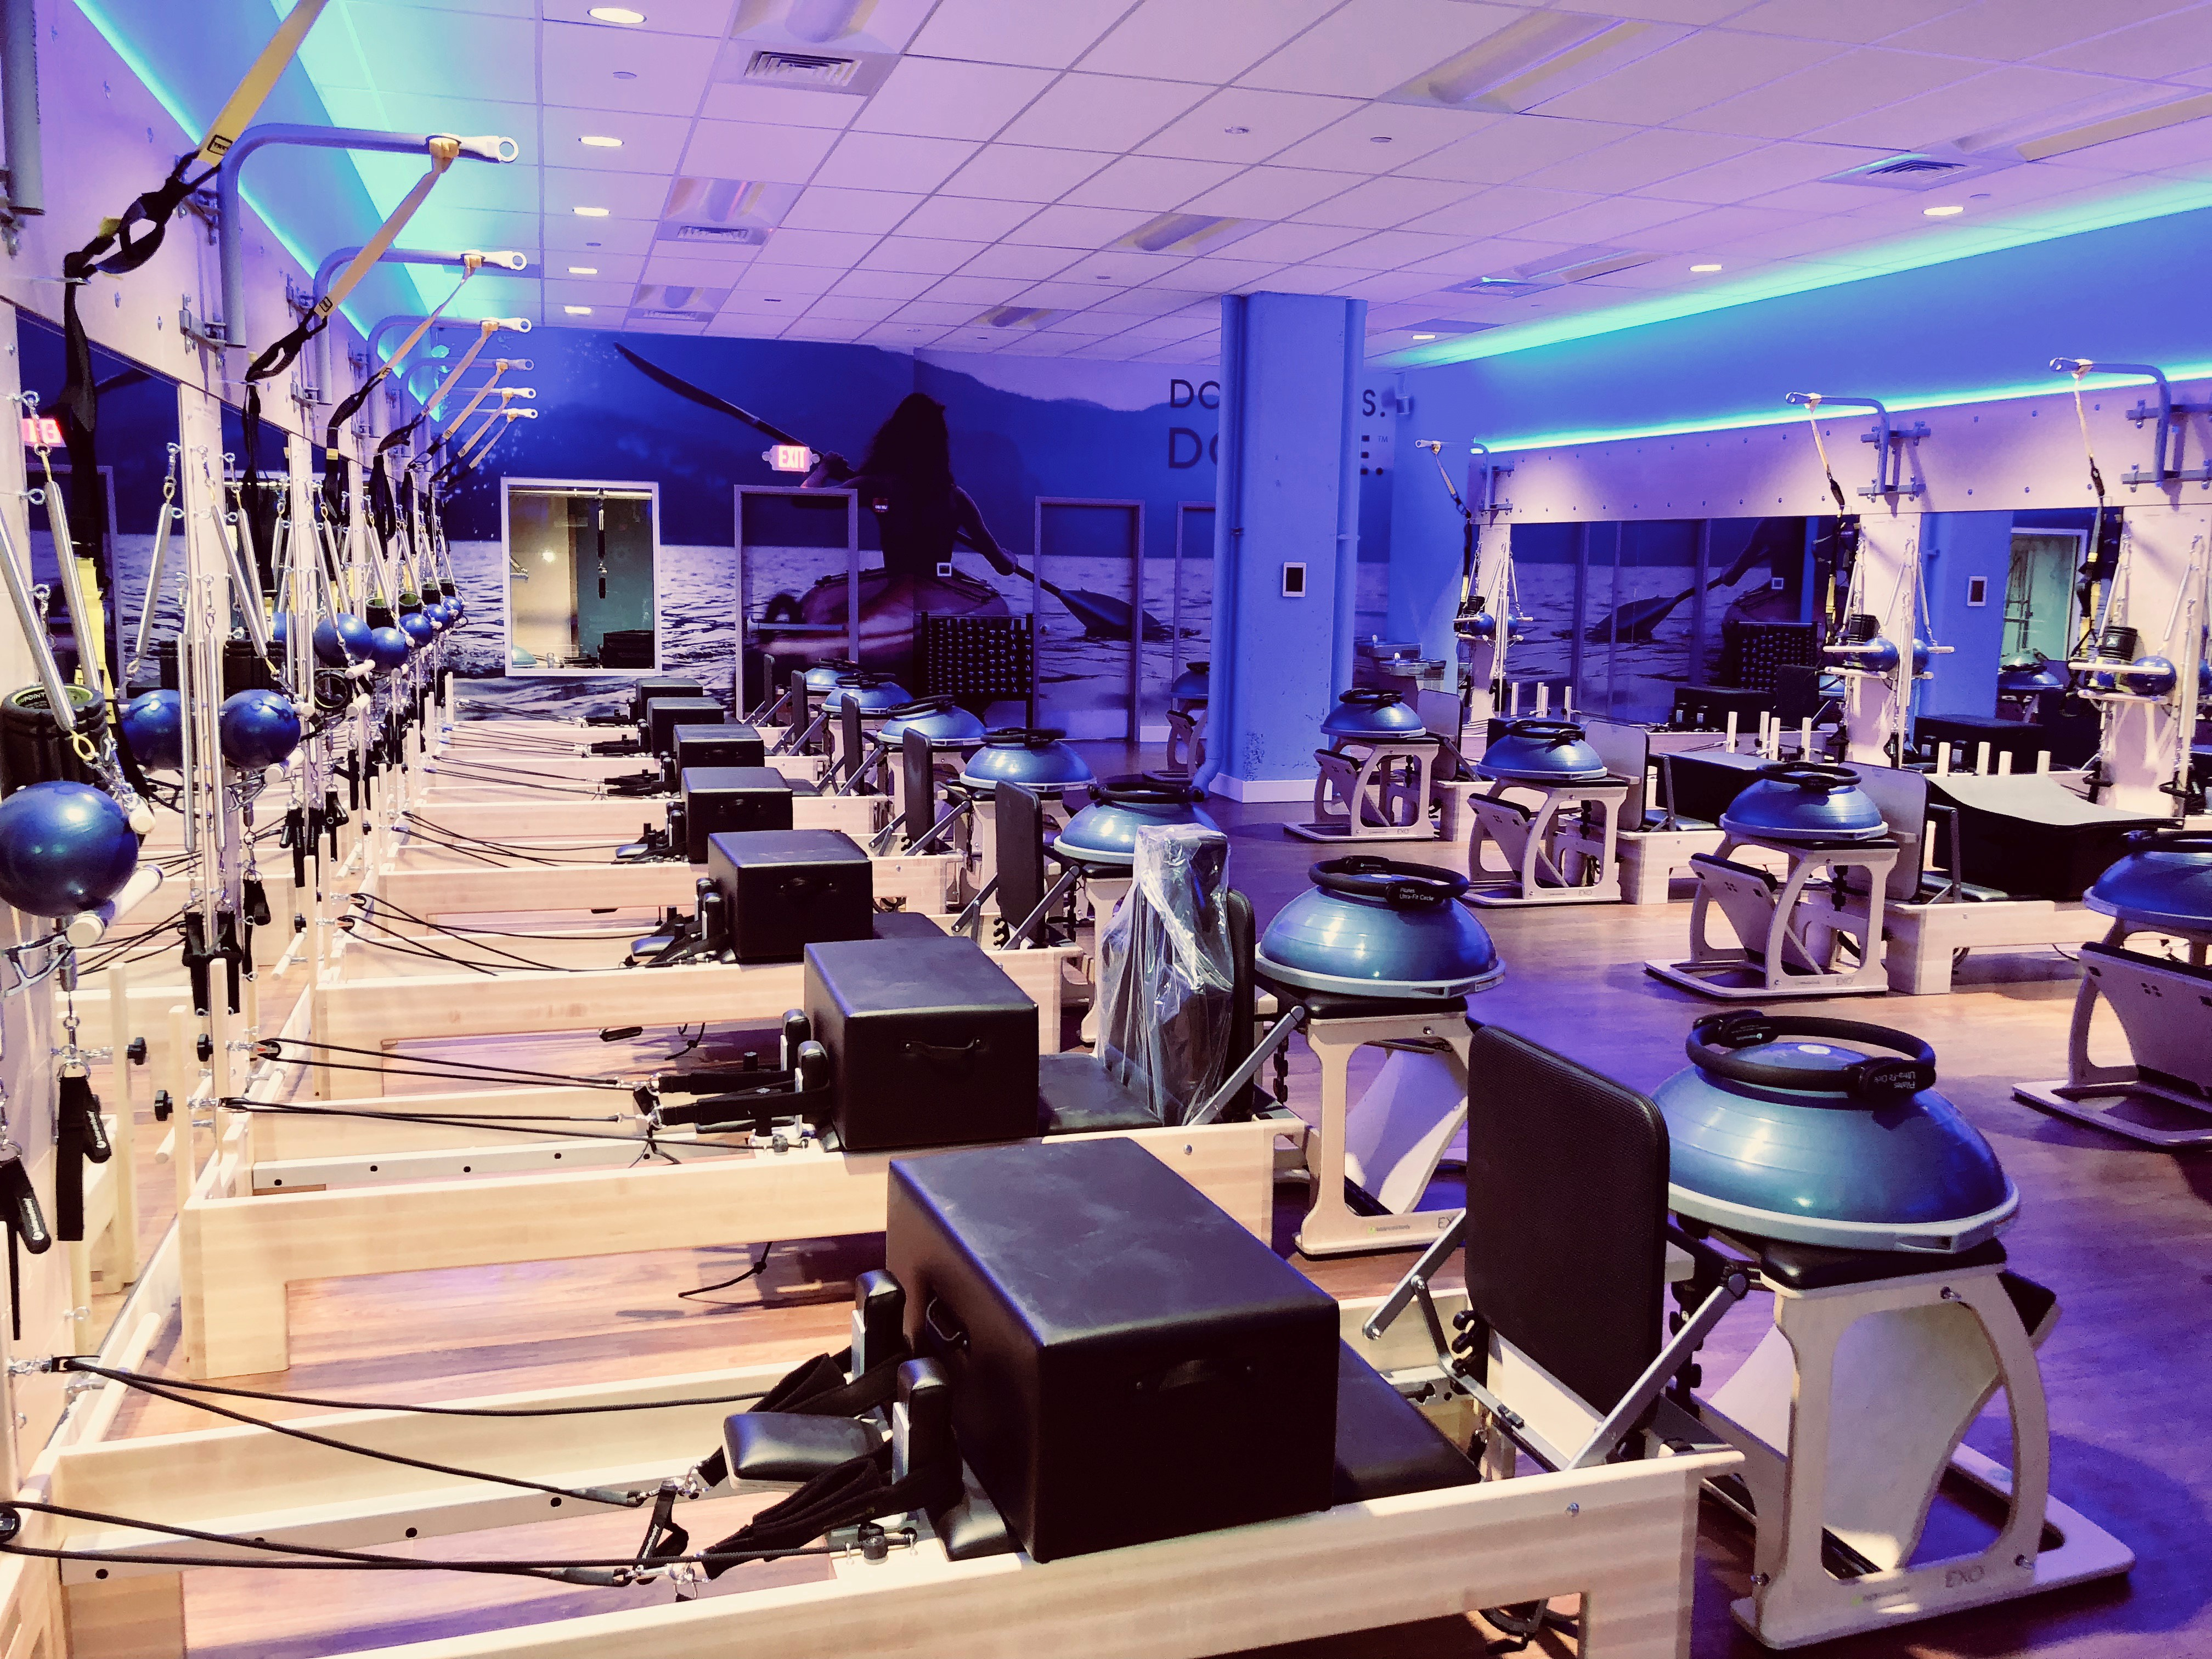 Club Pilates, a reformer-based Pilates studio founded in Costa Mesa, CA in 2007, is bringing its 50-minute modernized Pilates classes to the DMV with the opening of a location in Pentagon City. (Image: Courtesy Club Pilates)<p></p>